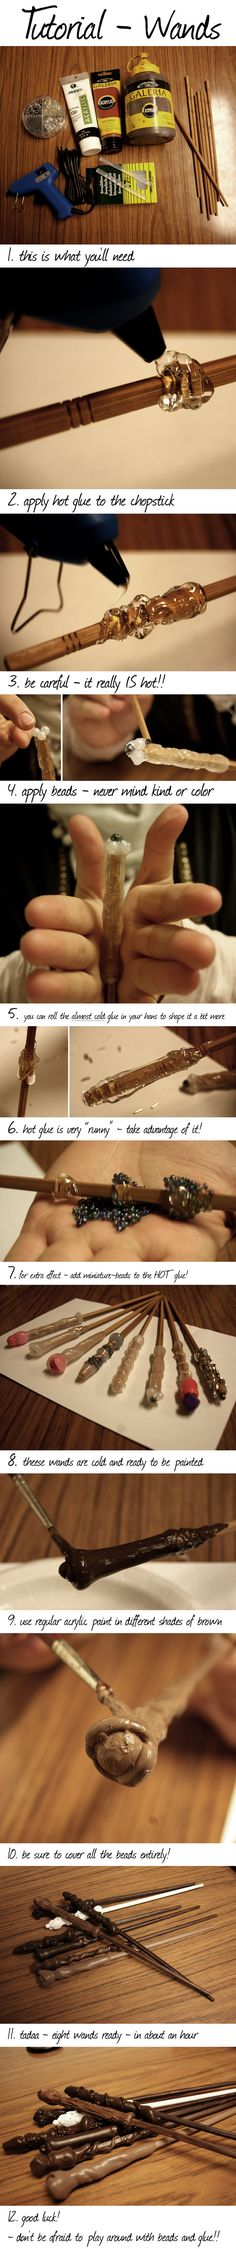 Tutorial for Wands - for all Harry Potter fans